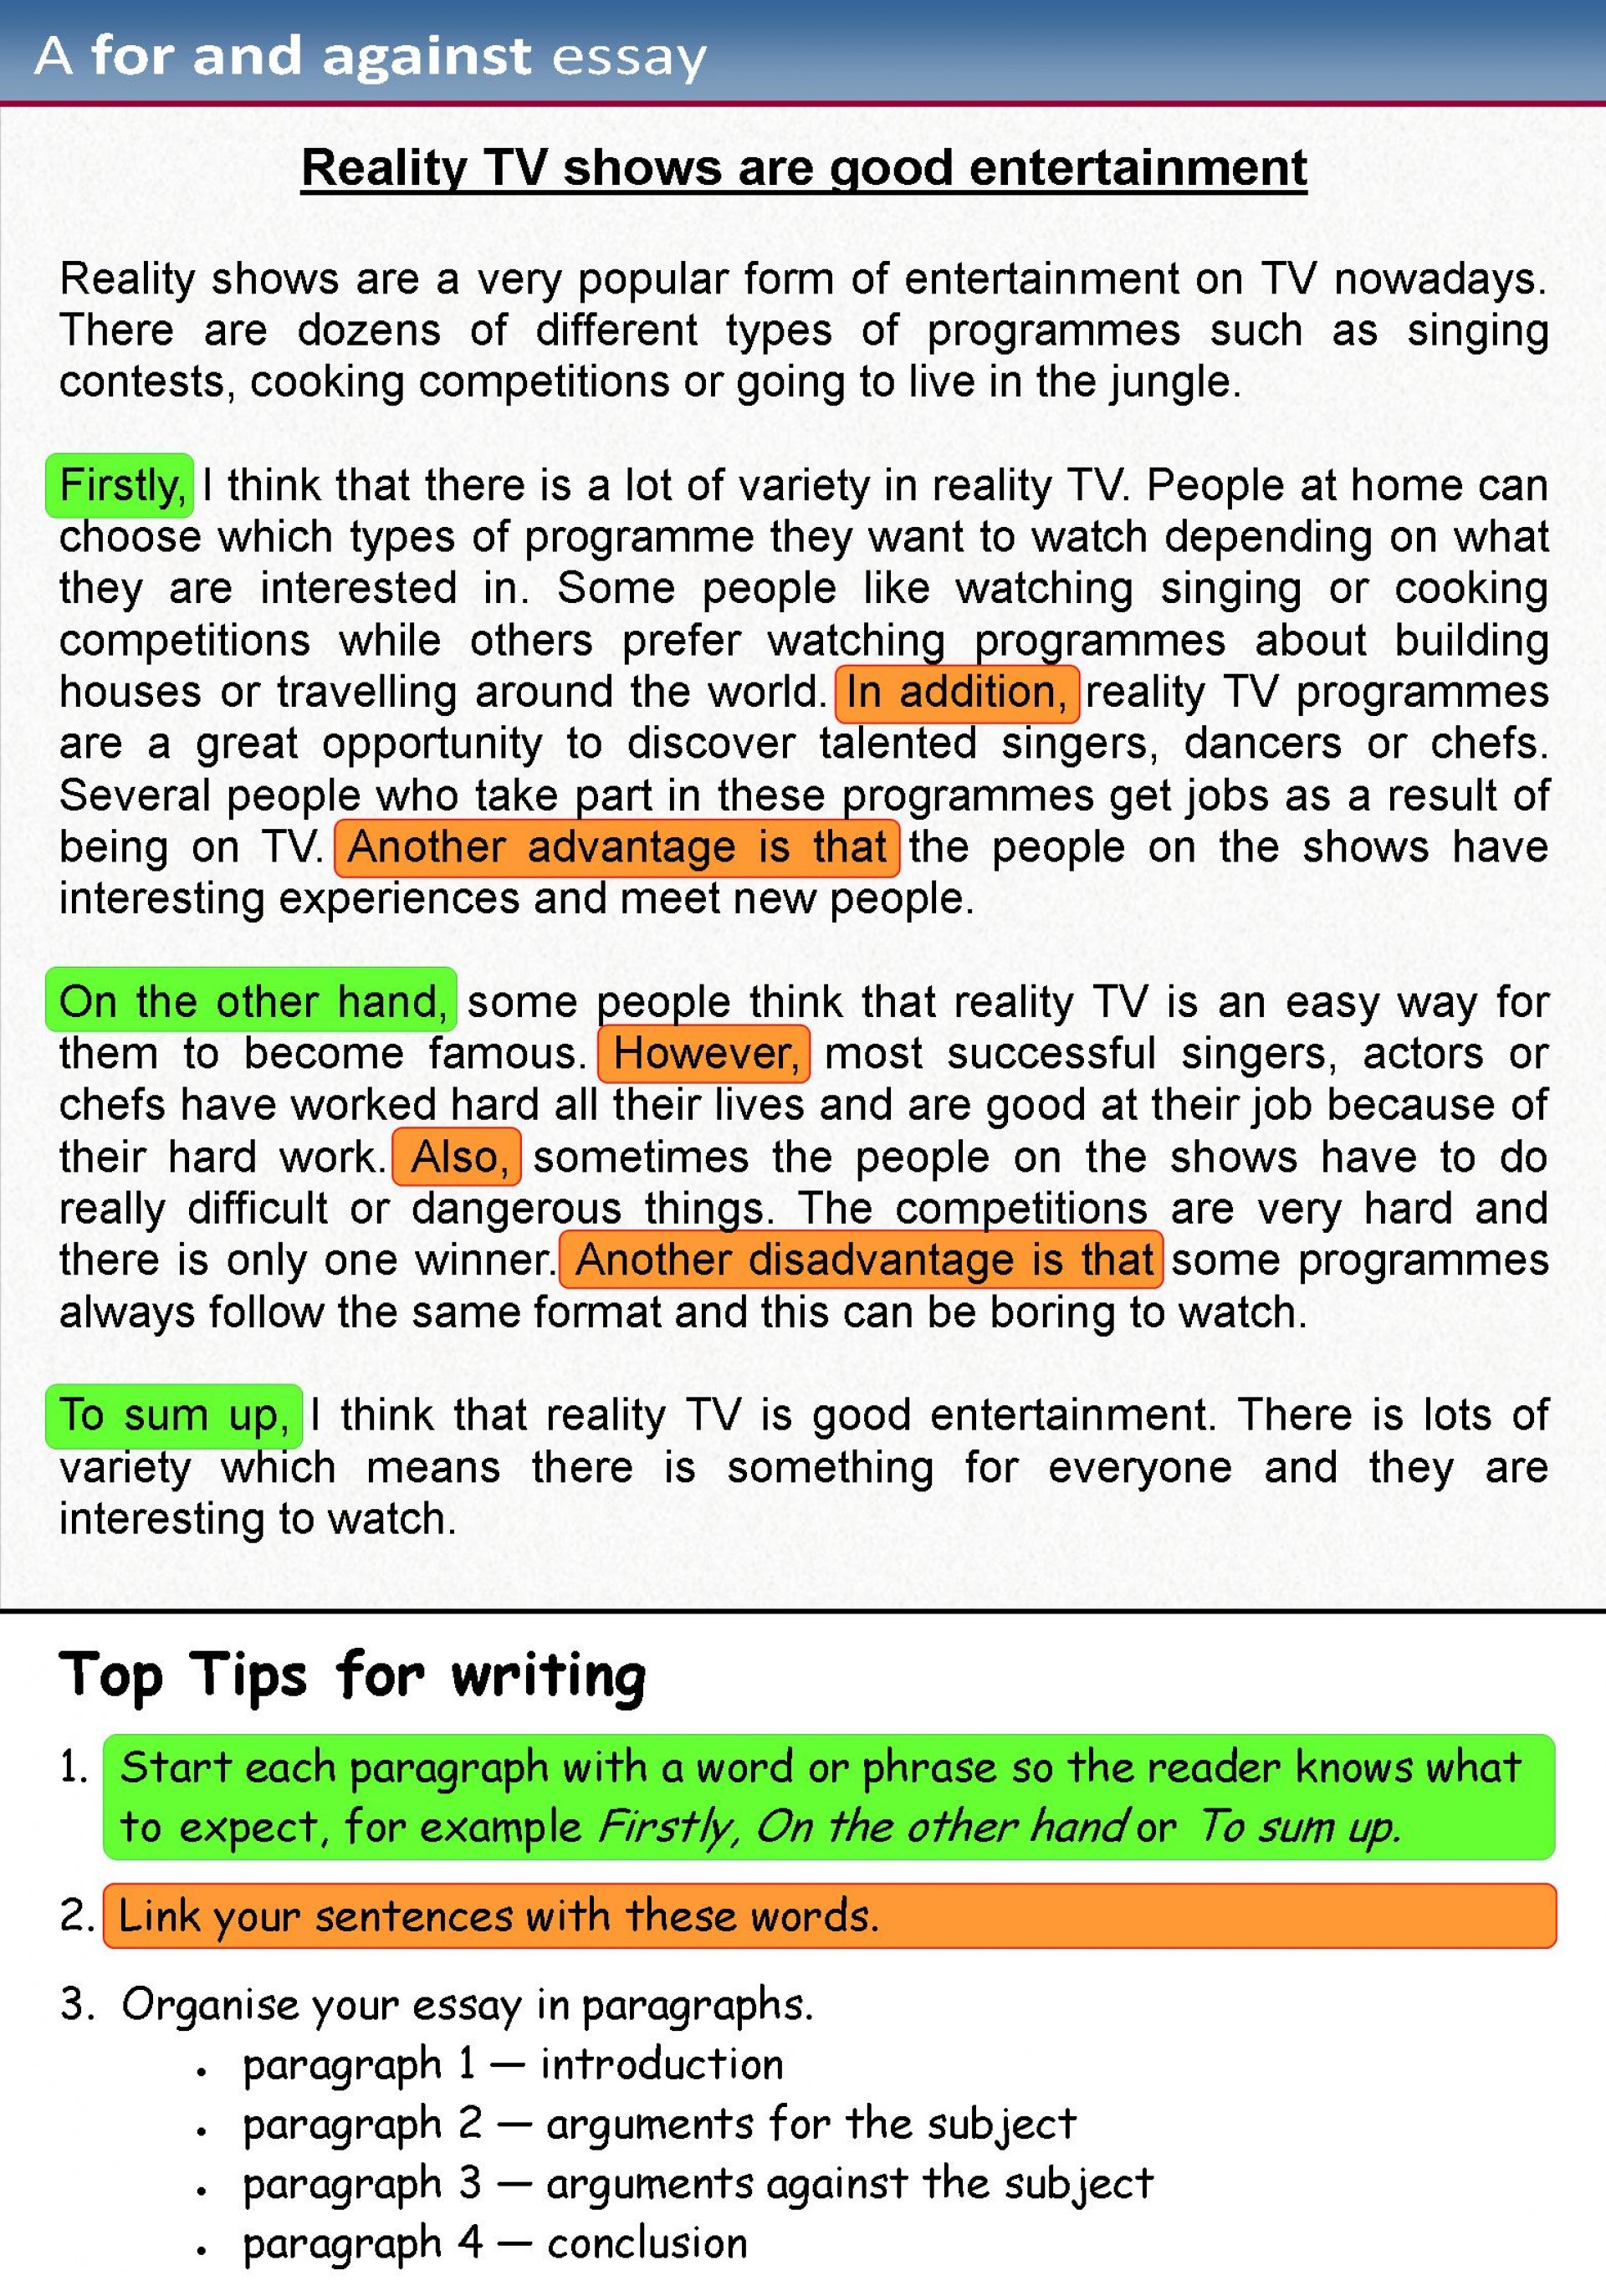 002 Another Word For Essay Example Fantastic Argumentative Question This Will 1920